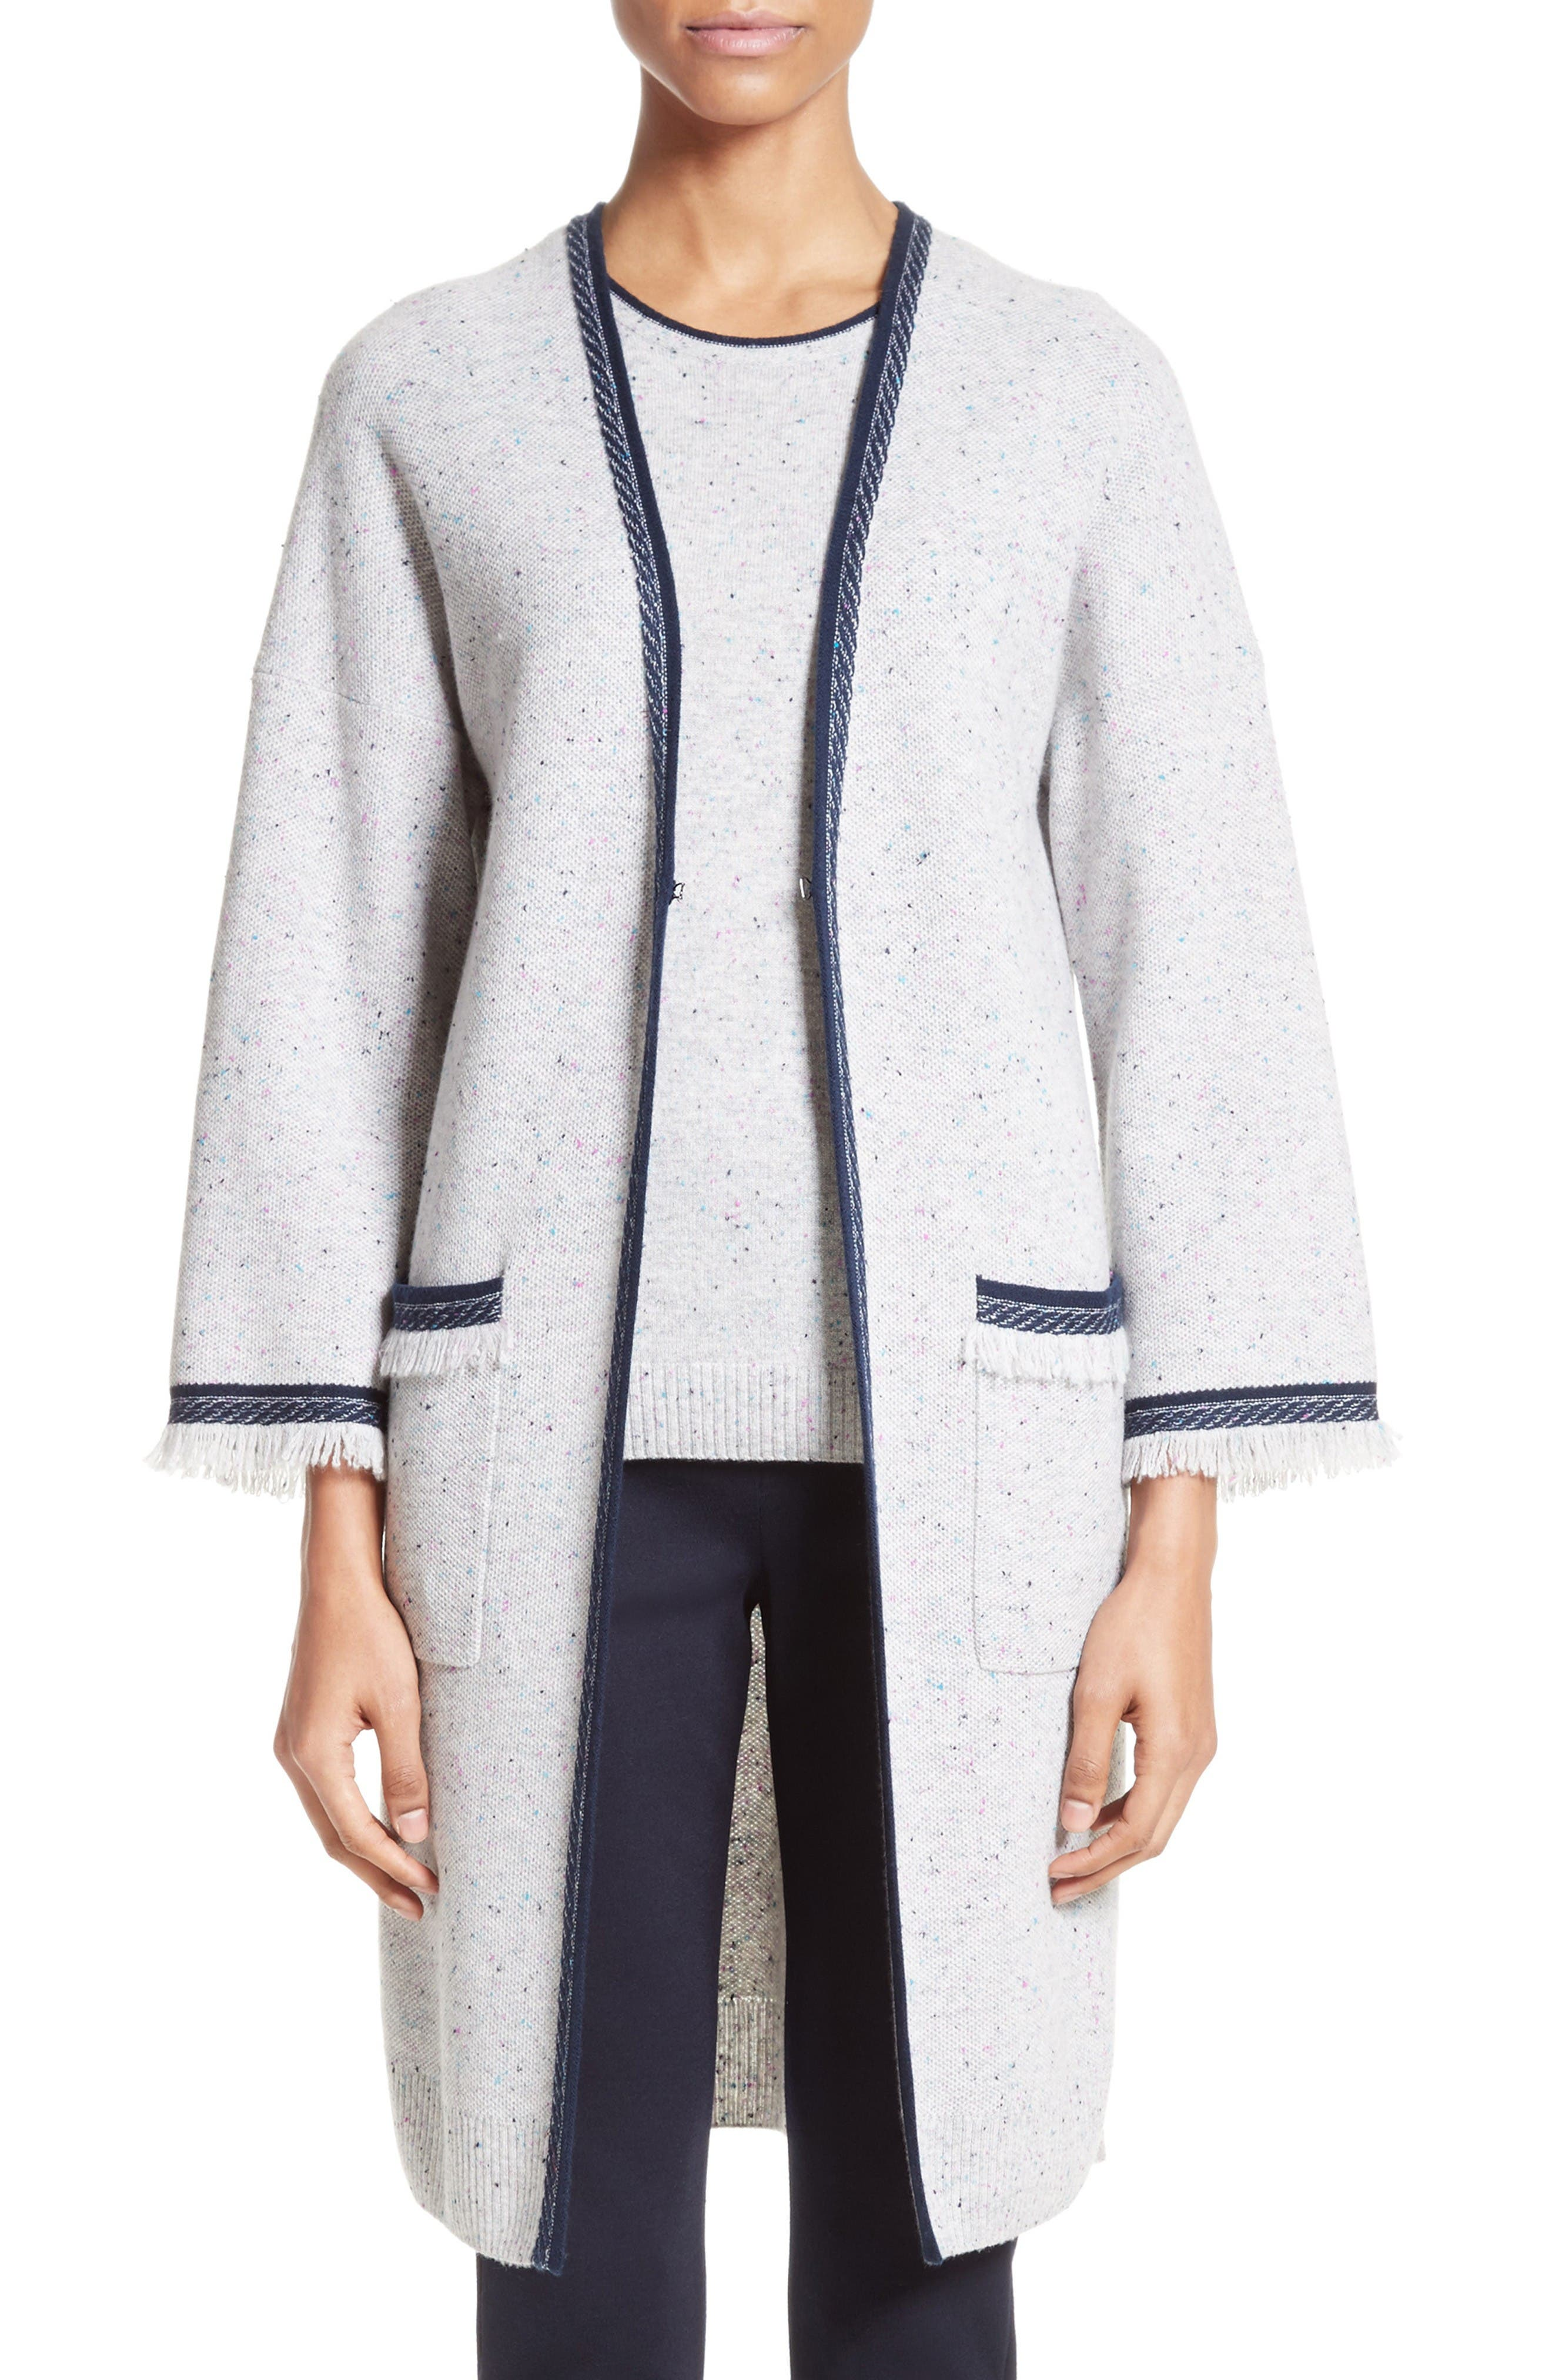 St. John Collection Cashmere Cardigan